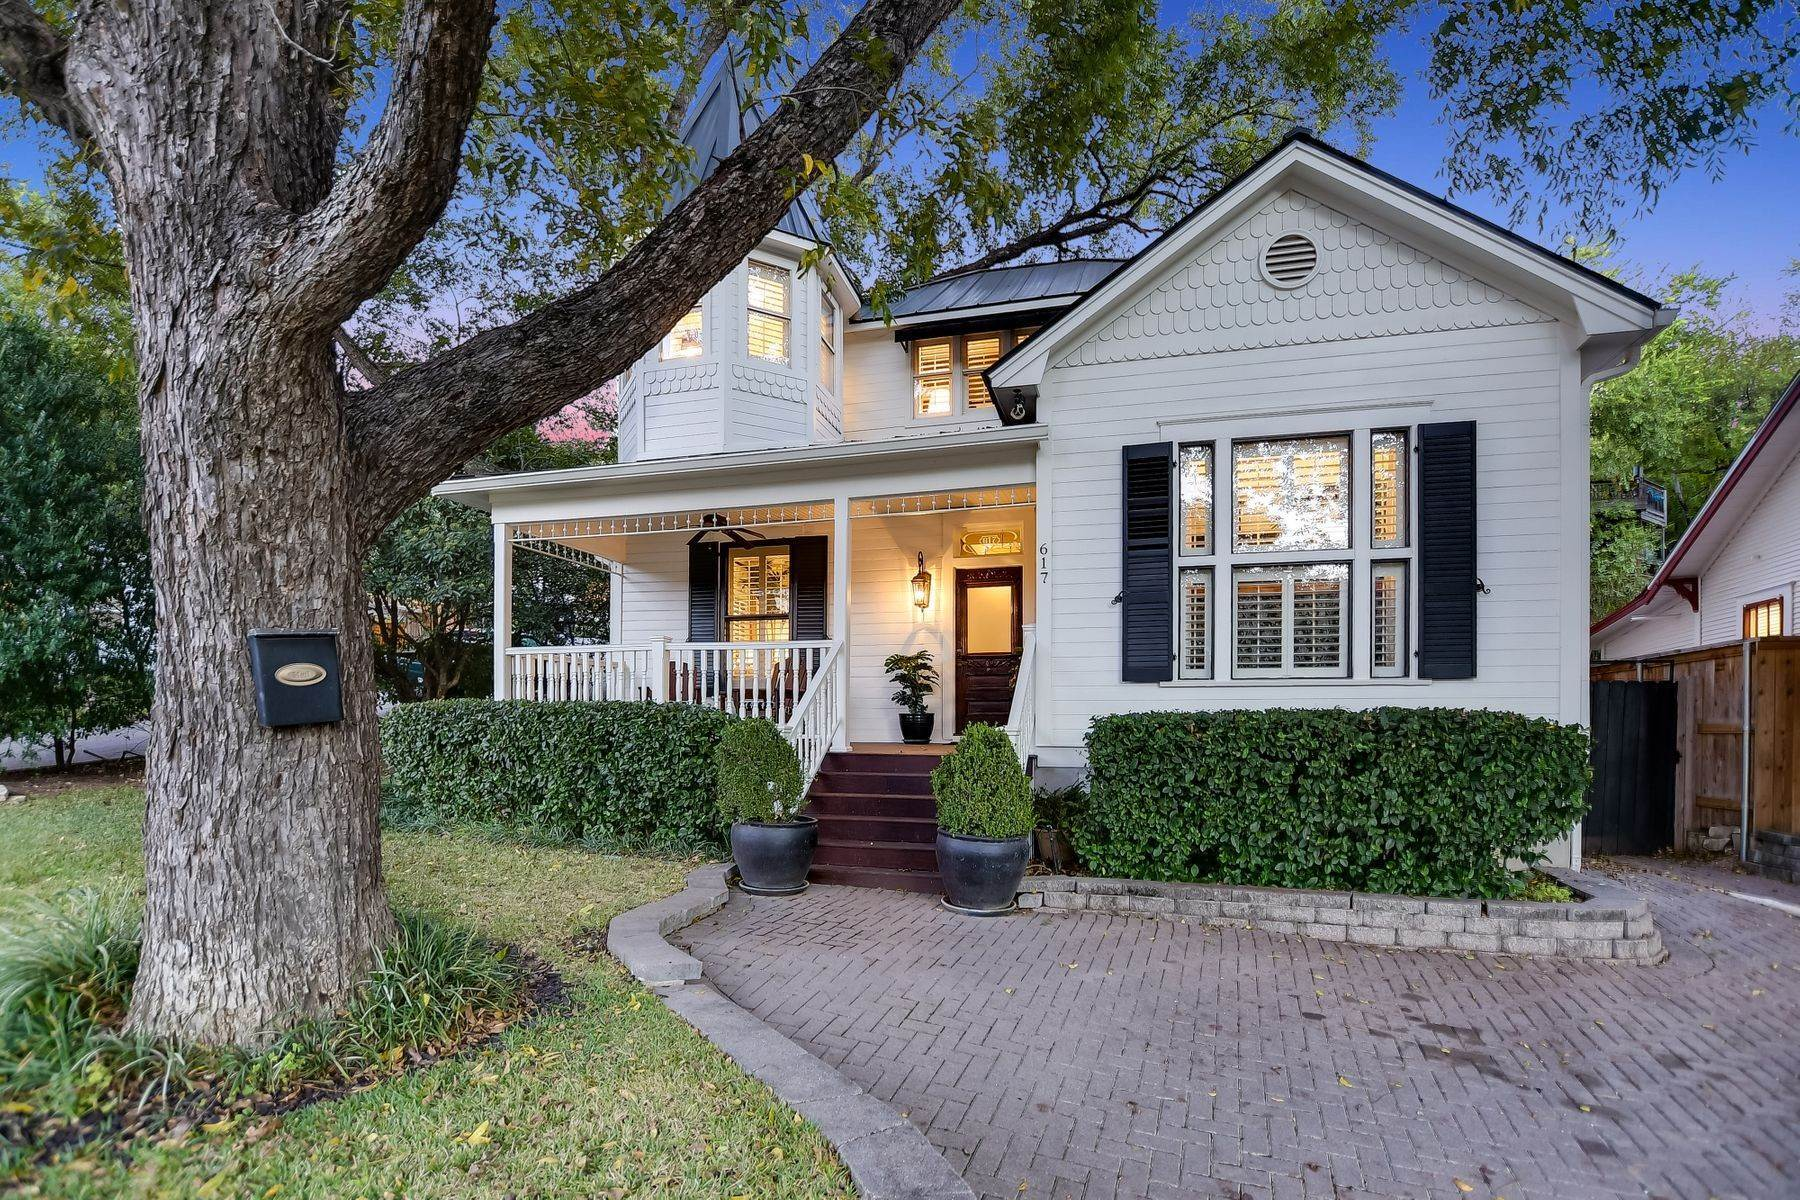 Single Family Homes for Sale at Timeless Old West Austin Classic 617 Blanco Street Austin, Texas 78703 United States